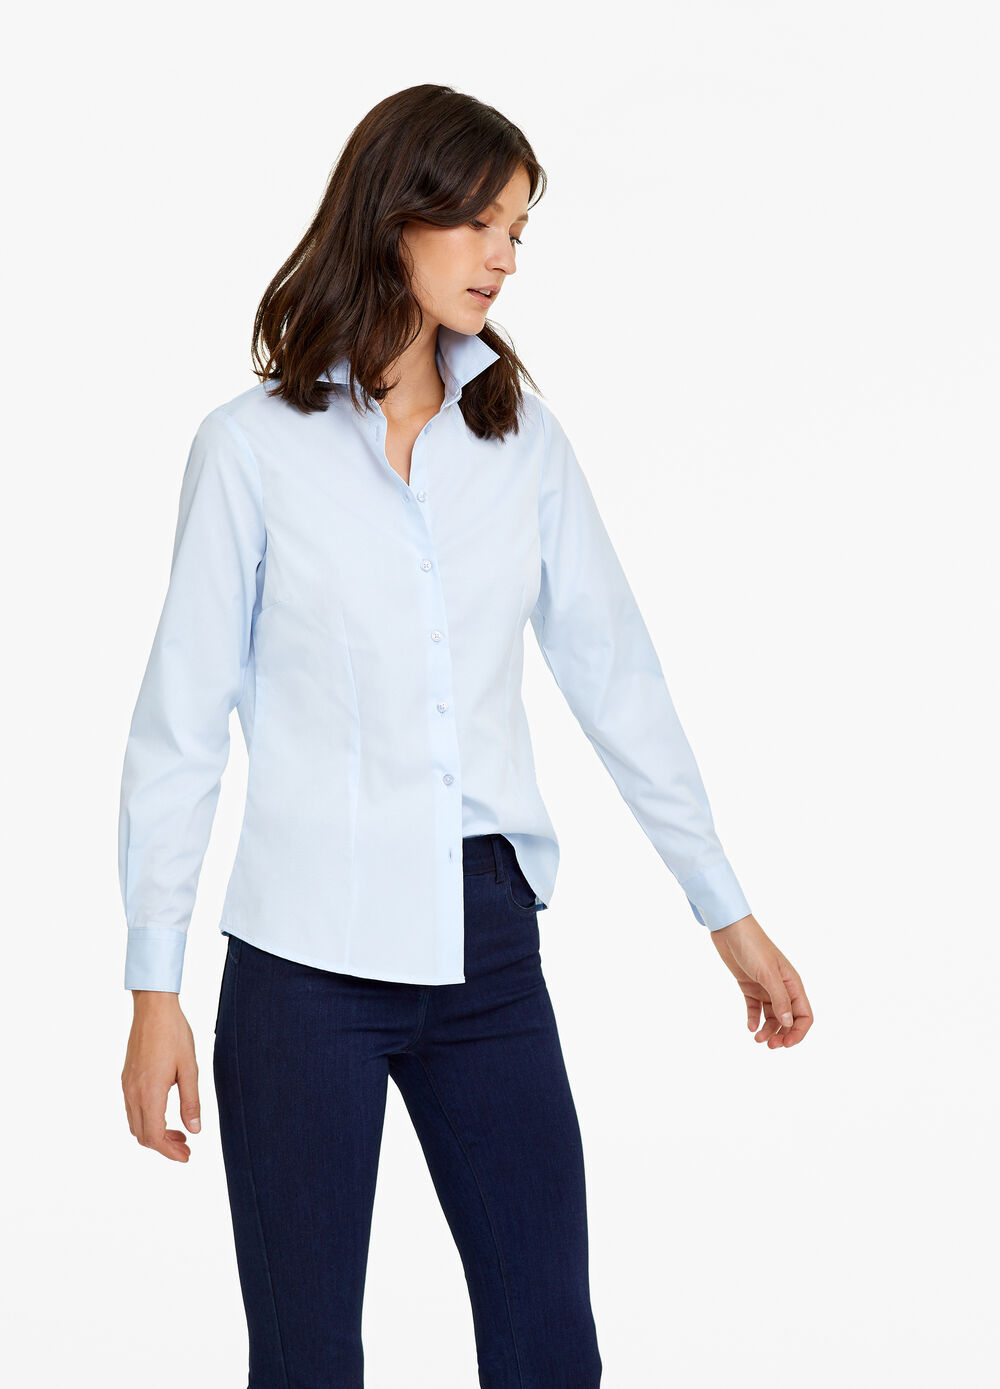 Cotton blend jacquard shirt